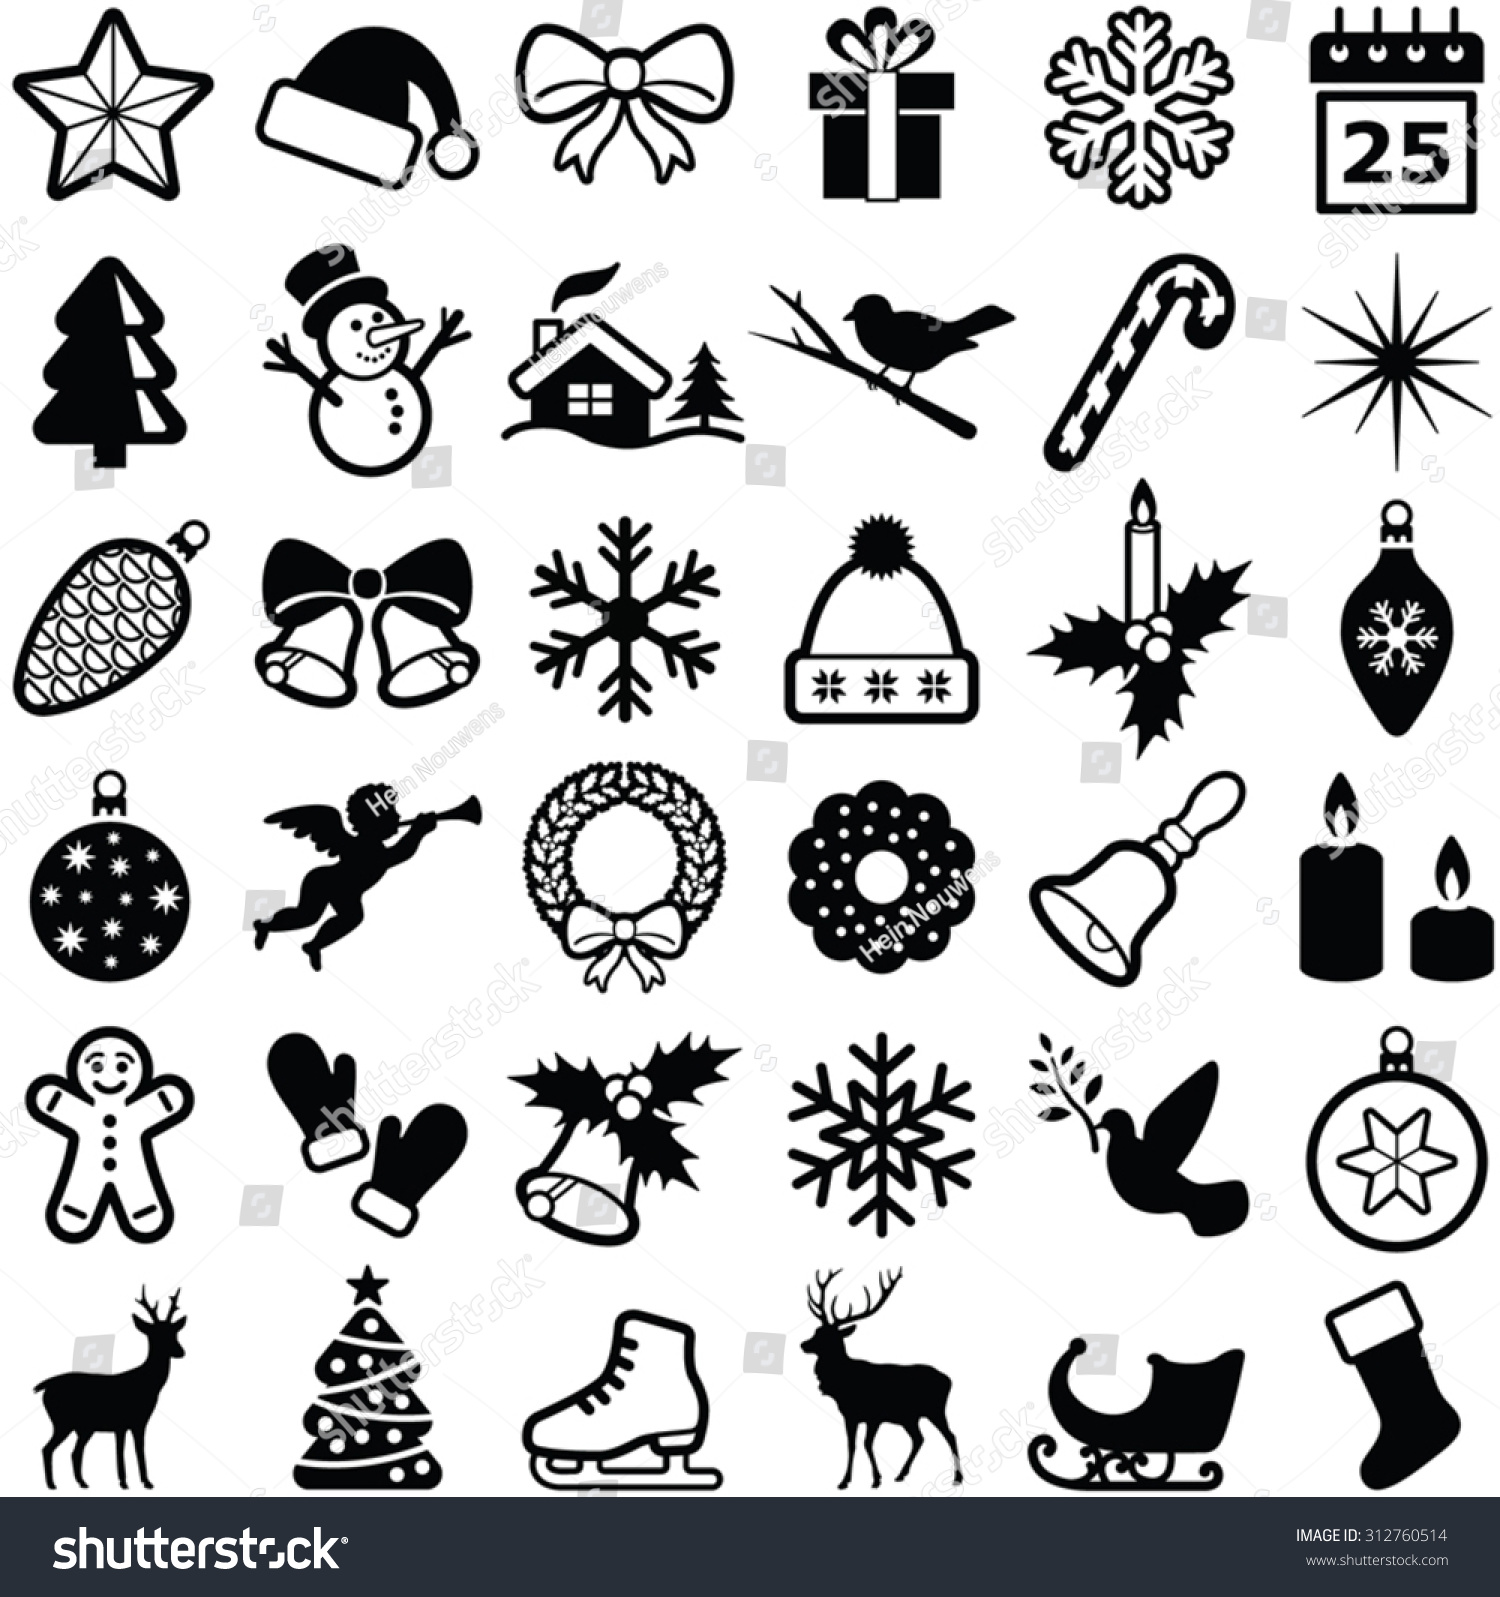 Christmas Winter Icons Collection Vector Silhouette Stock ...